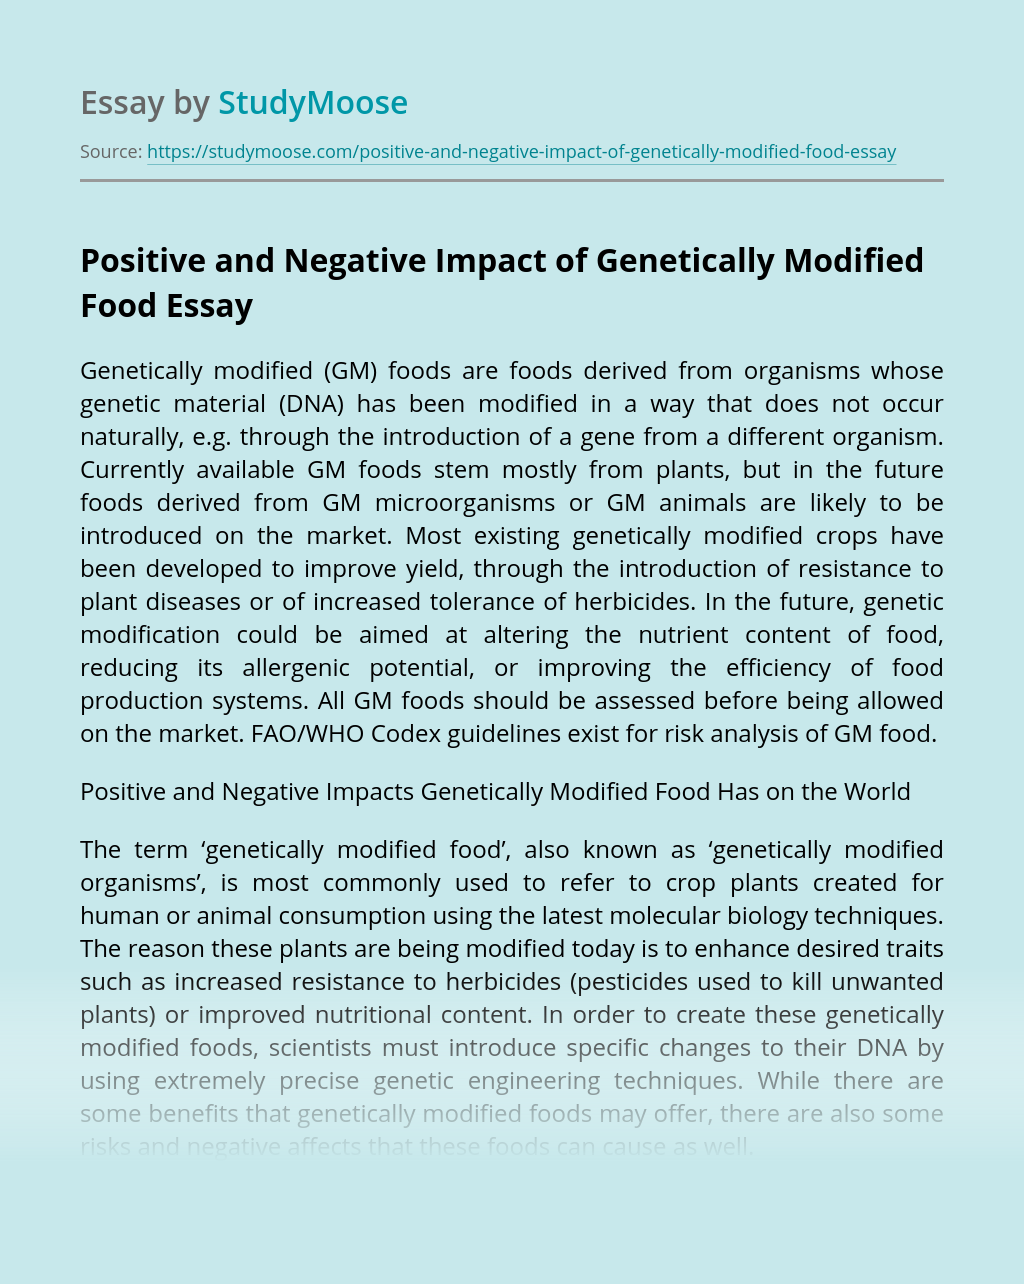 Positive and Negative Impact of Genetically Modified Food